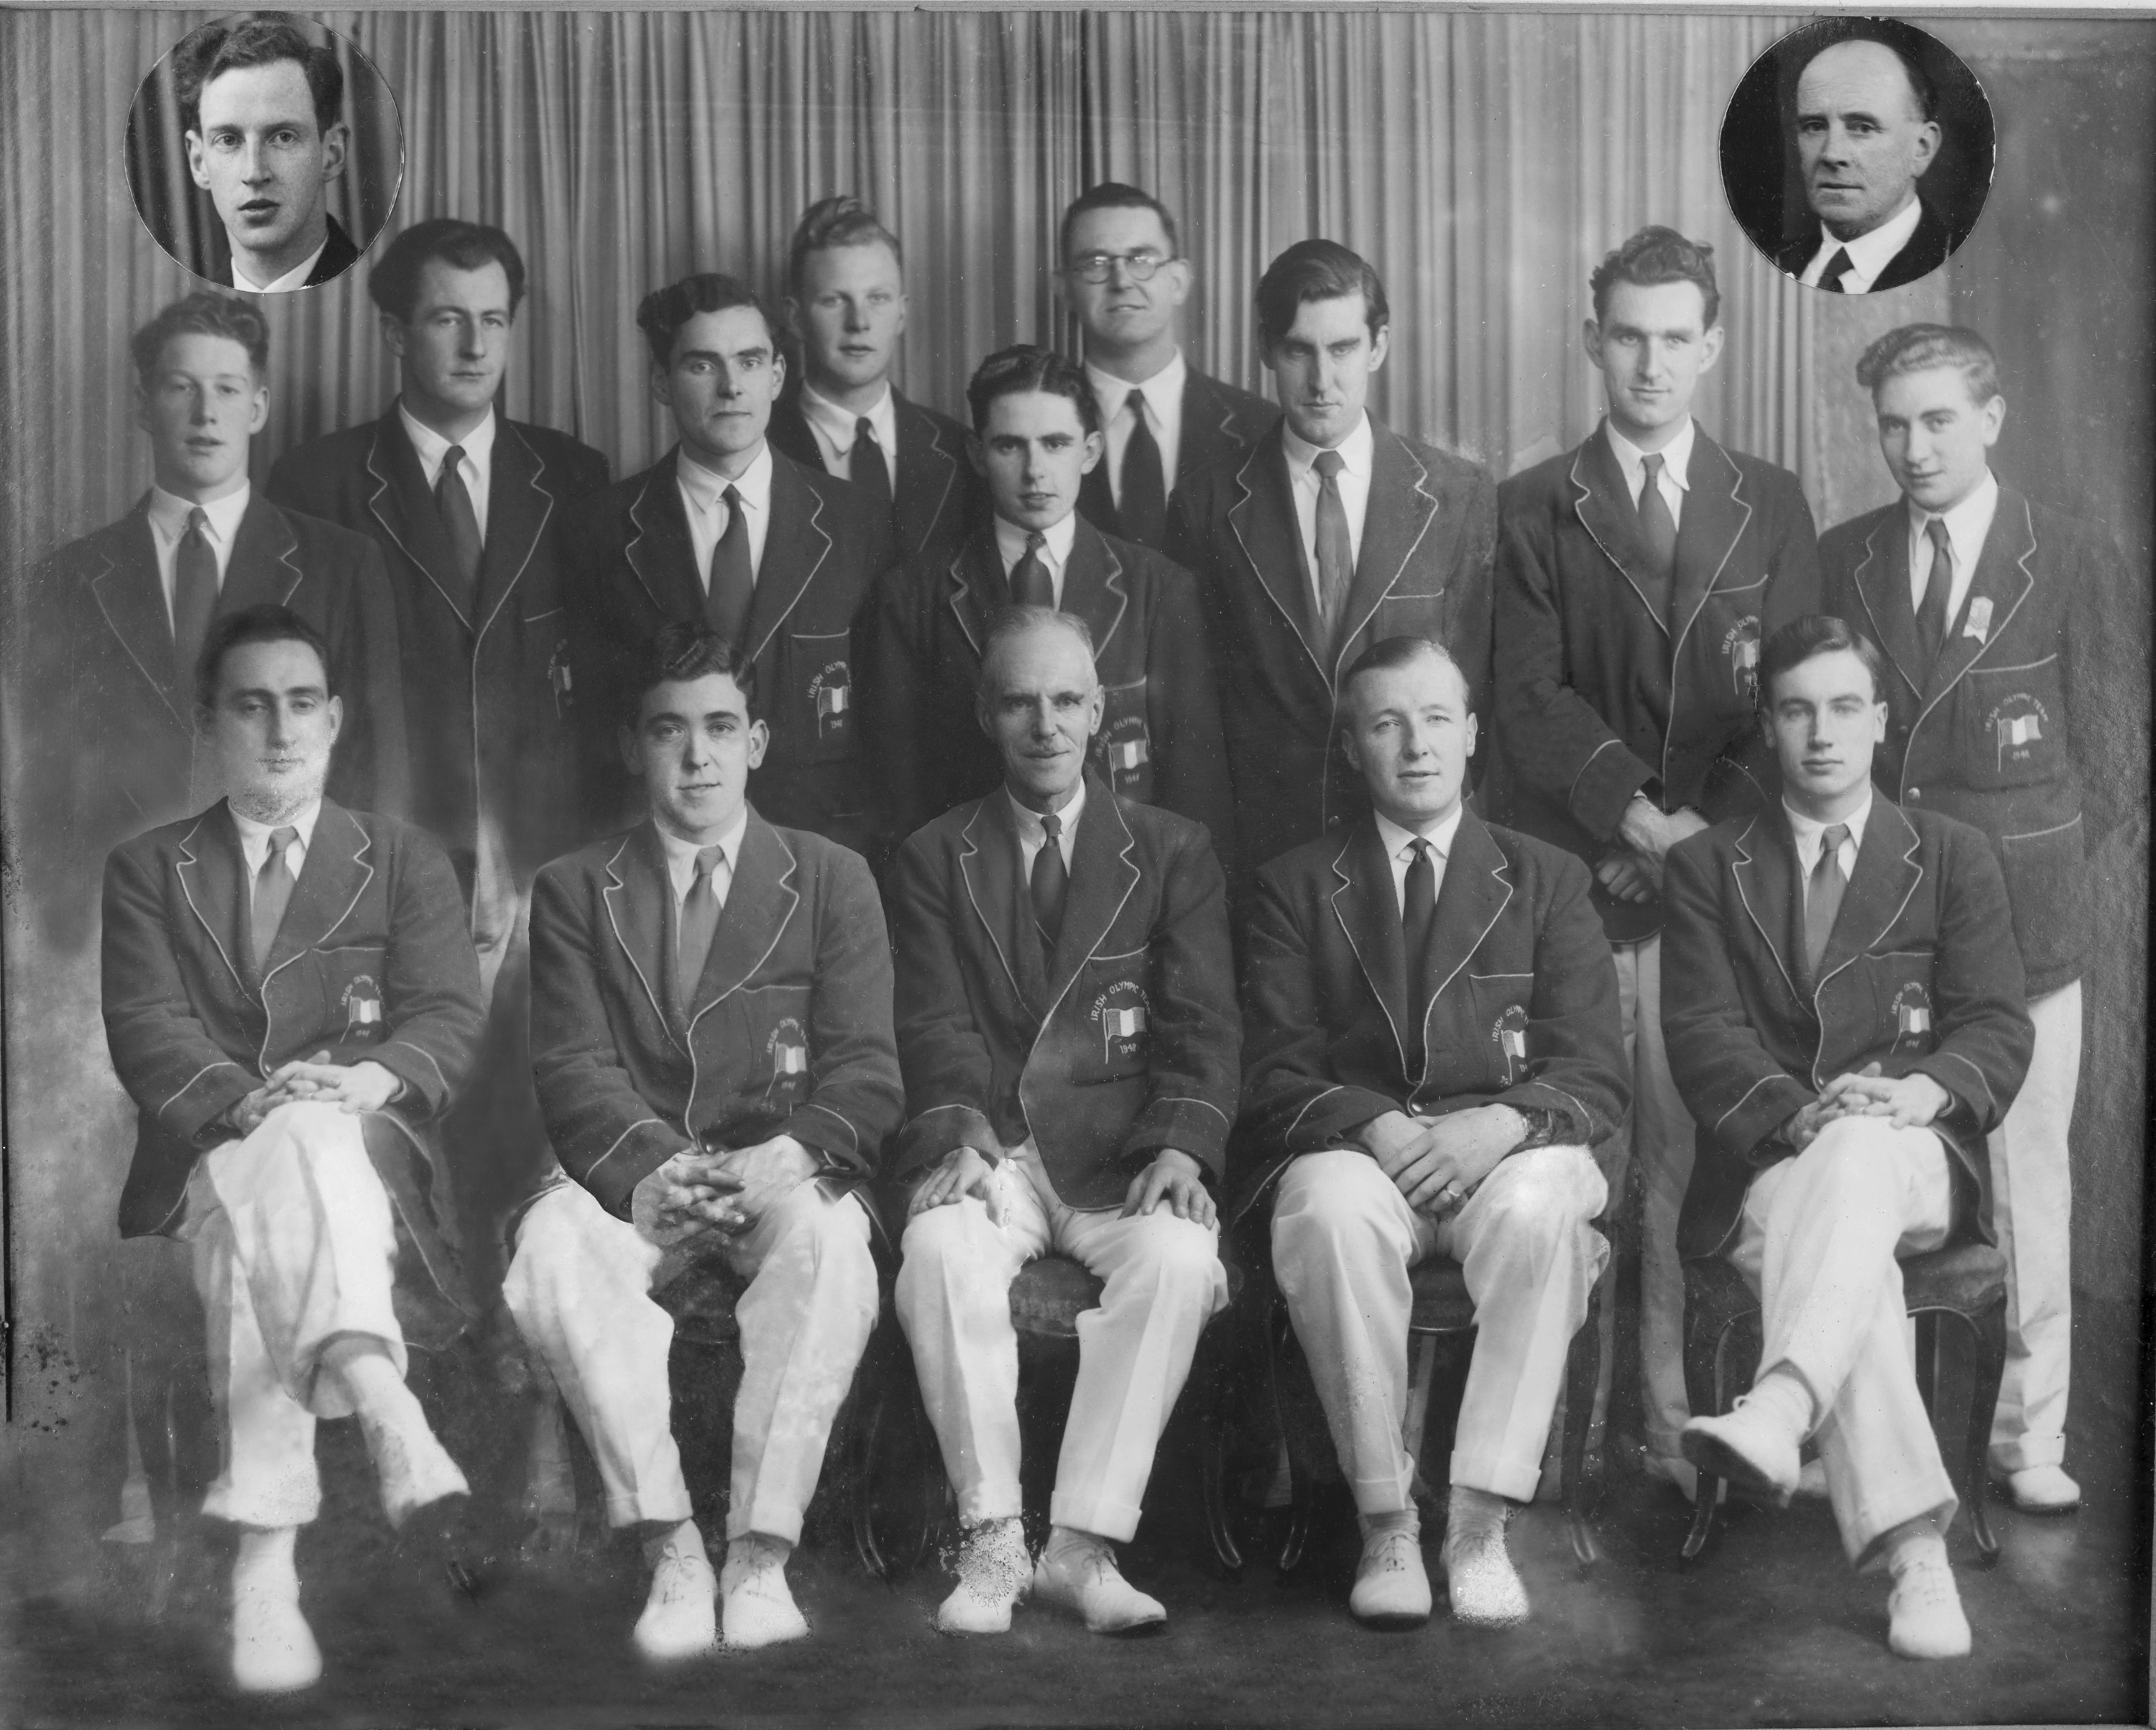 Irish Olympic Crew 1948